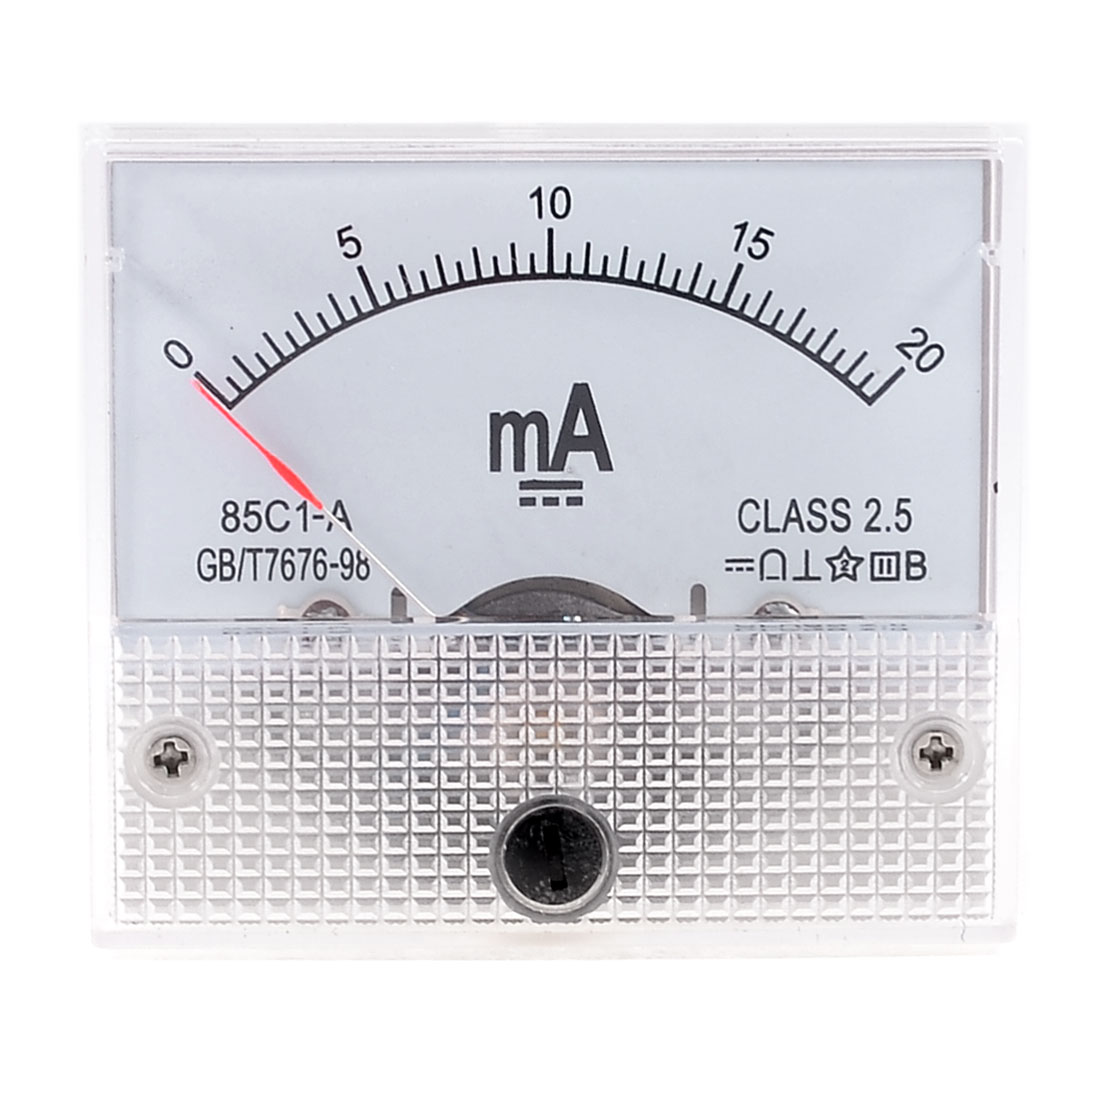 DC 0-20mA Analog Current Panel Meter Ammeter 85C1-A